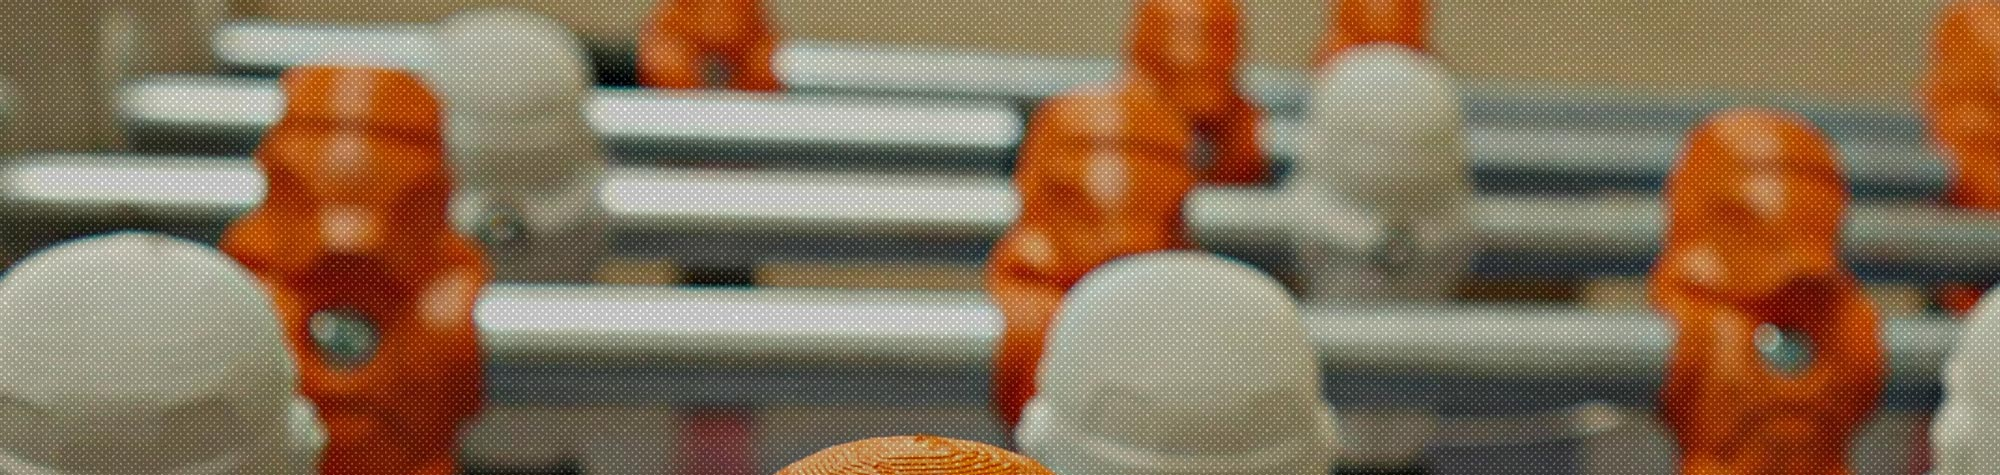 How to make a Foosball table with 3D printing!